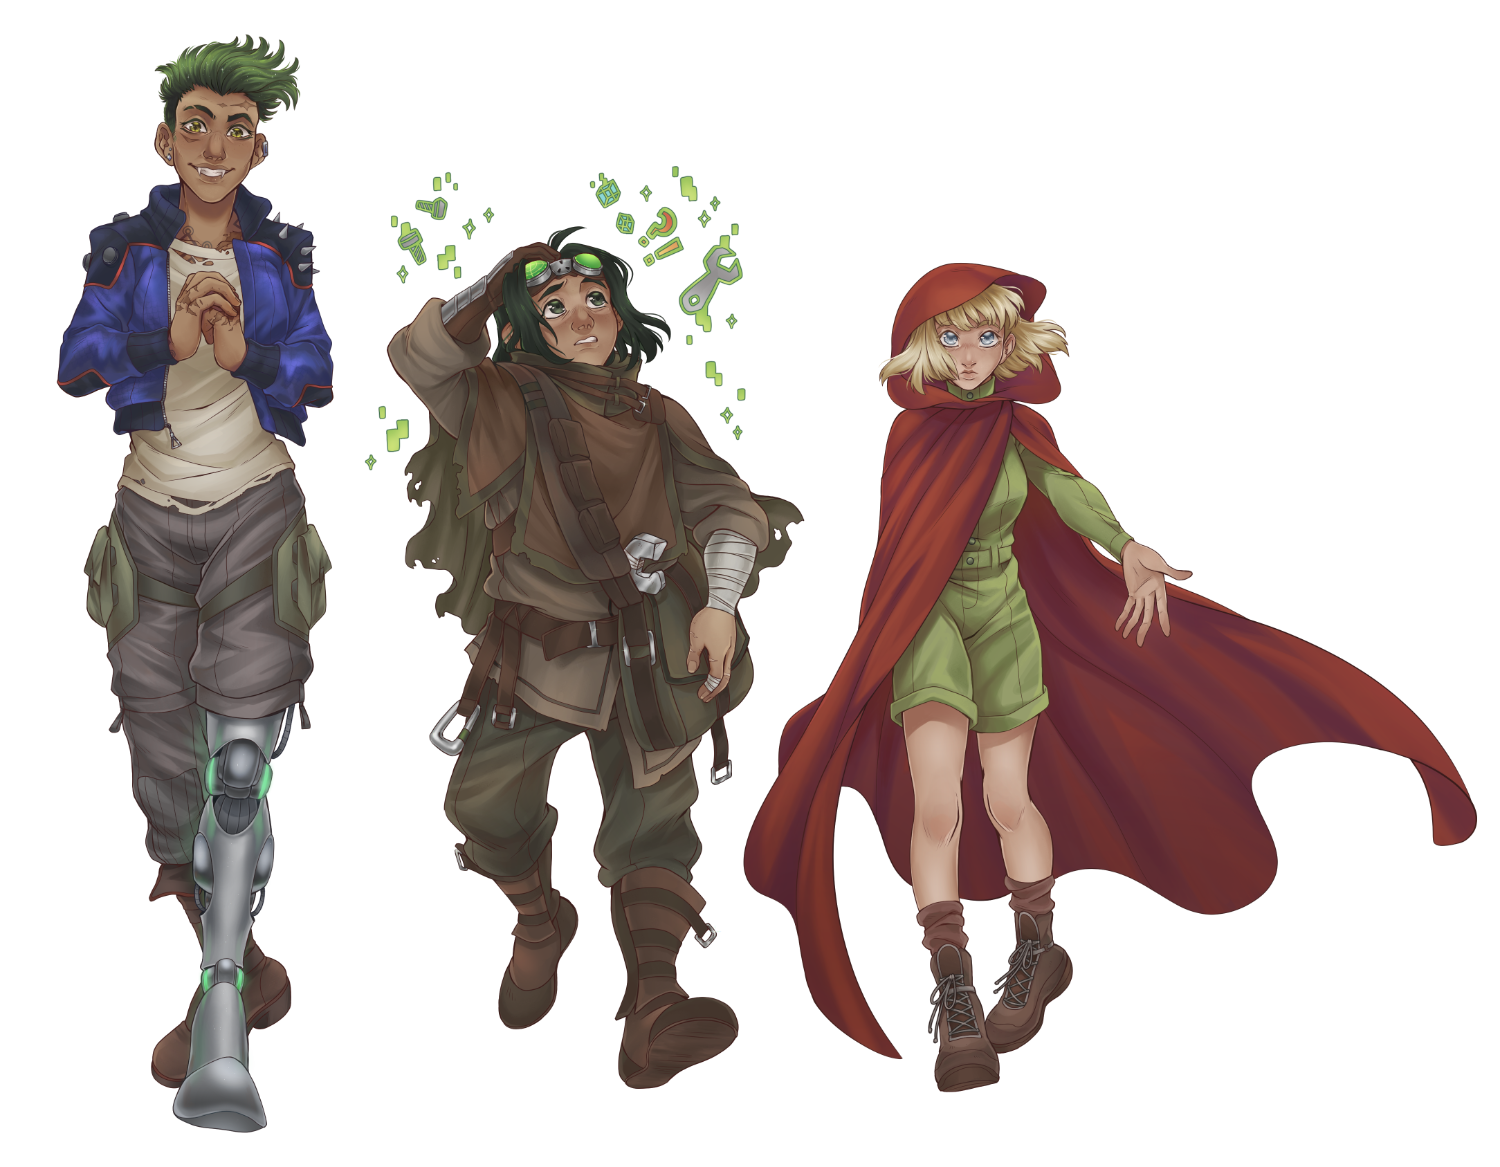 Our cast of three explorers walking towards camera.. From left to right: Nix - a warrior woman with green hair and serpent fangs cracks her knuckles and smiles. Her left leg is a metal prosthetic with jade green seams. Dili - a short dark haired man with dark green eyes looks distractedly past his pushed up goggles at multi-colored shapes floating above his head. ChaCha - An even shorter fair-skinned woman with blonde hair stares strangely forward with blue eyes. She has extended her left arm flourishing out her bright red hooded cloak to reveal the short-legged lime-green romper she wears beneath.